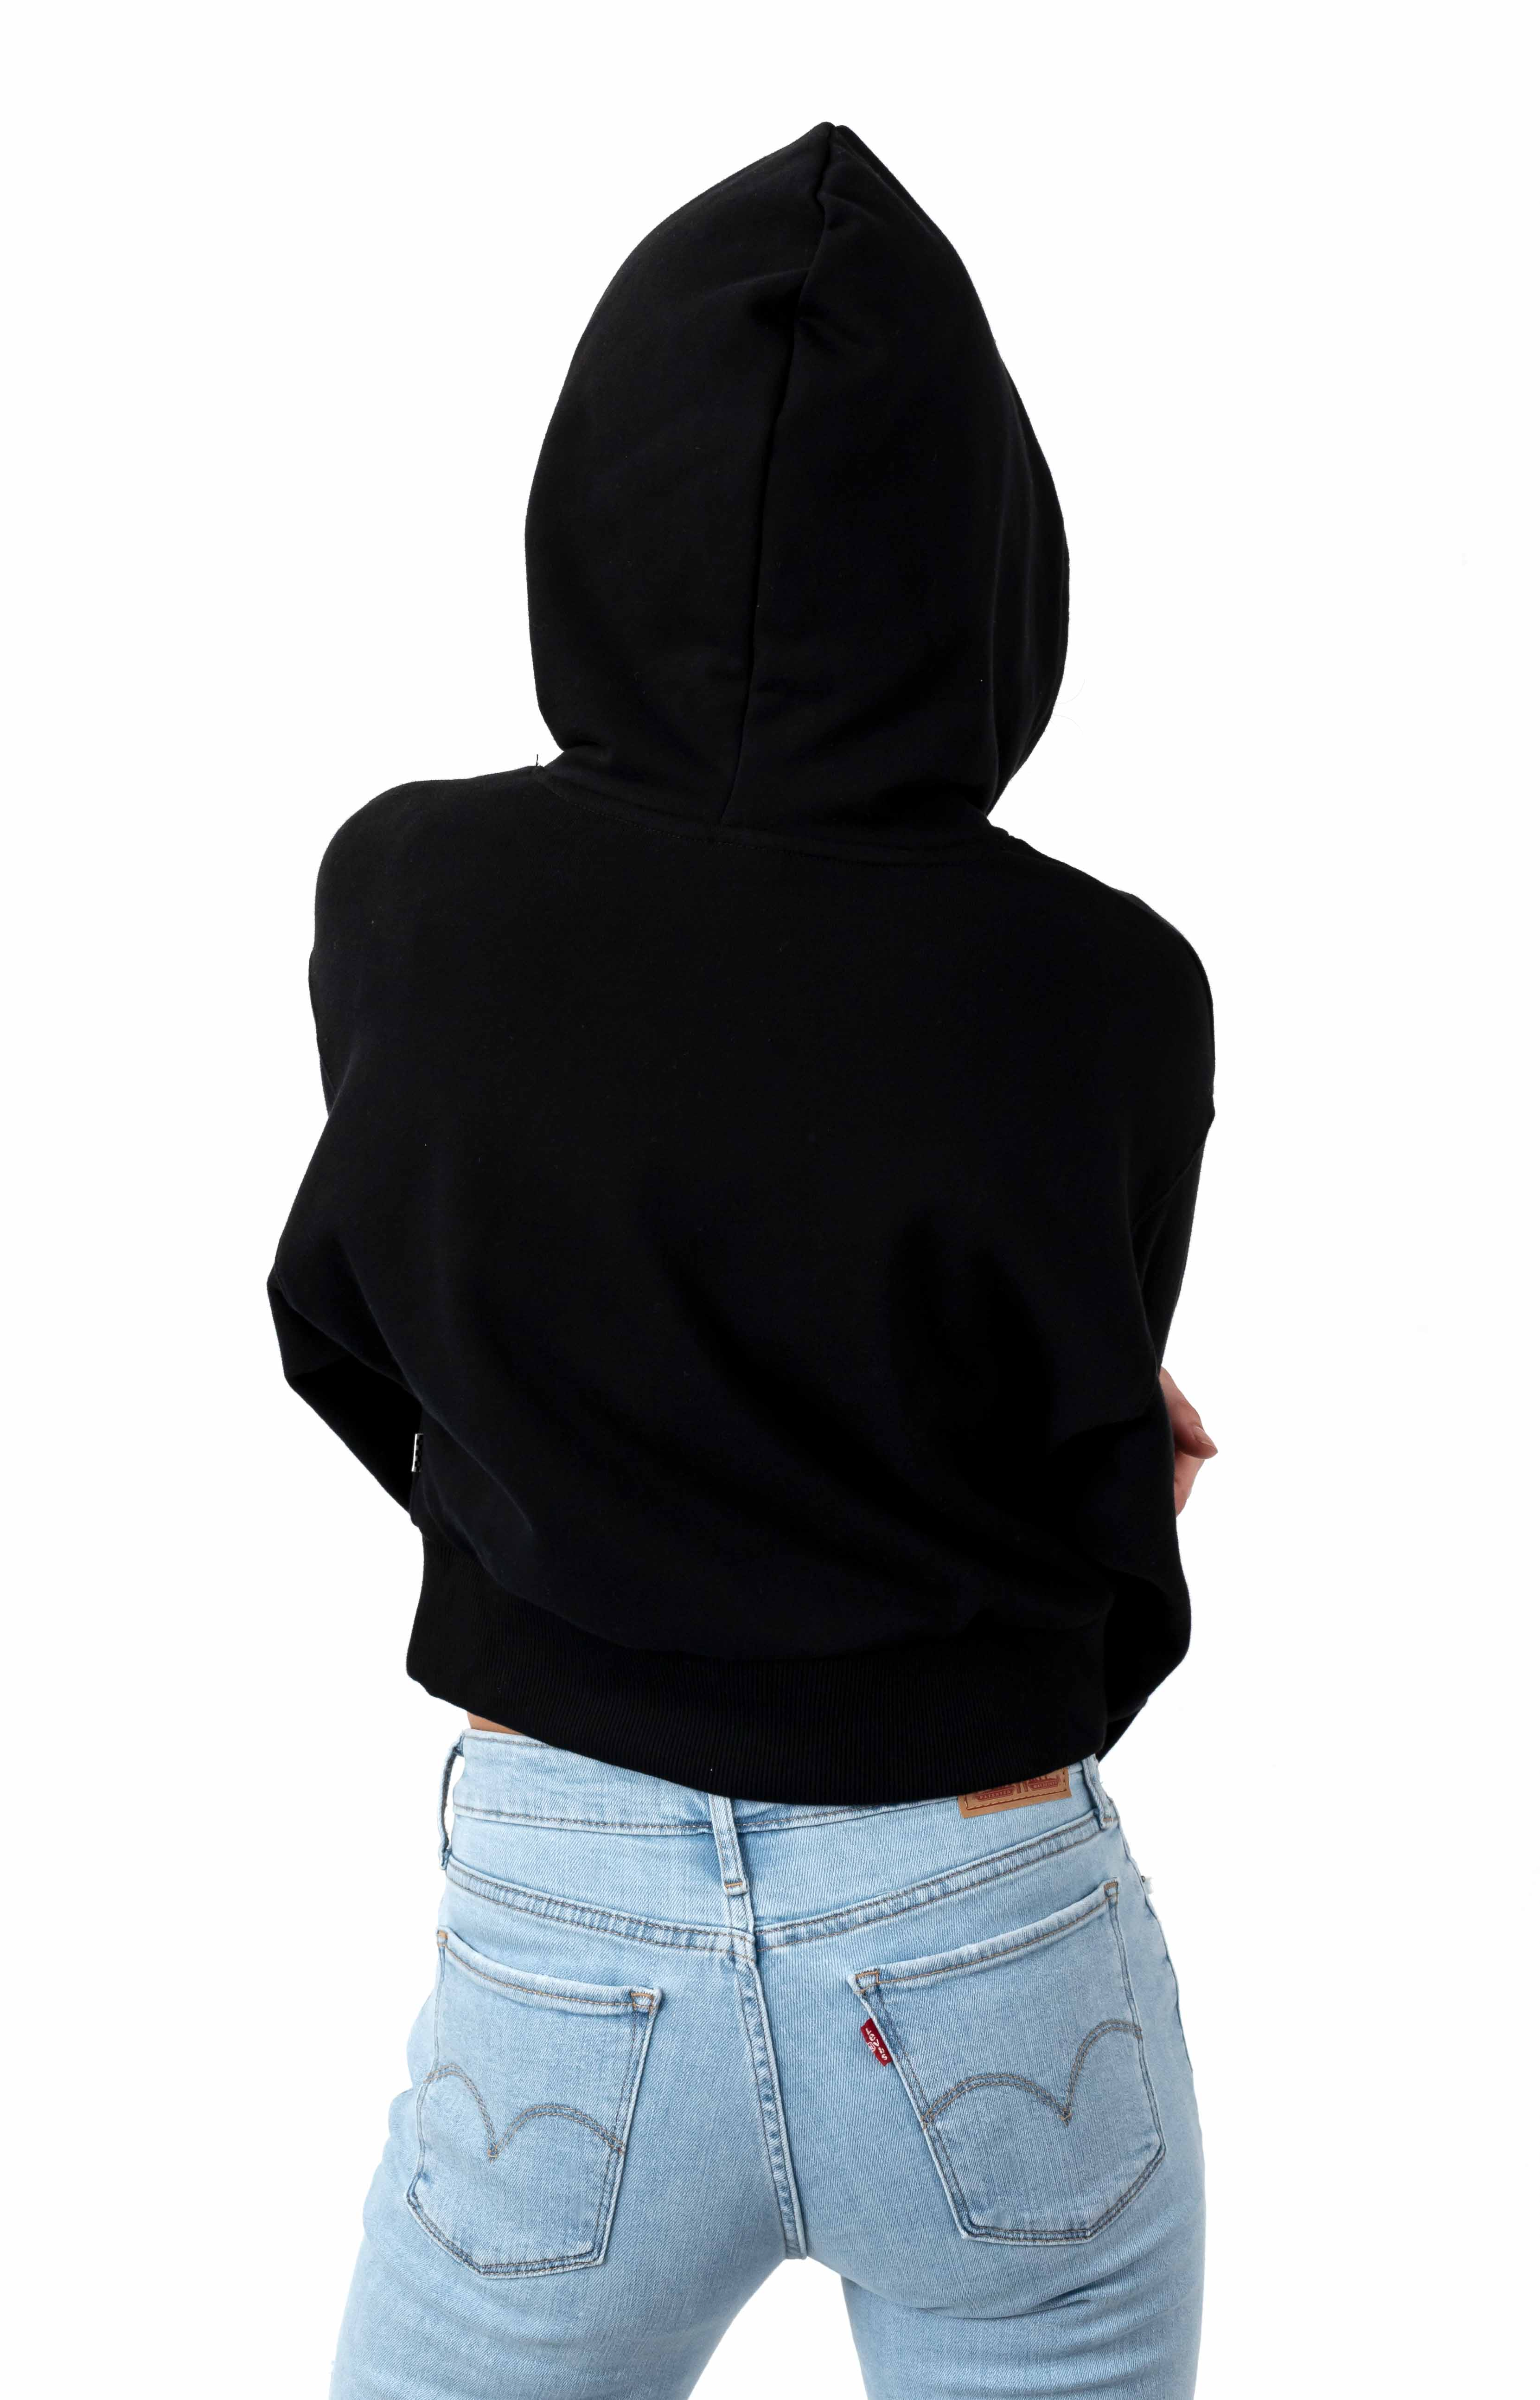 Strait Out Turvy Pullover Hoodie - Black 3